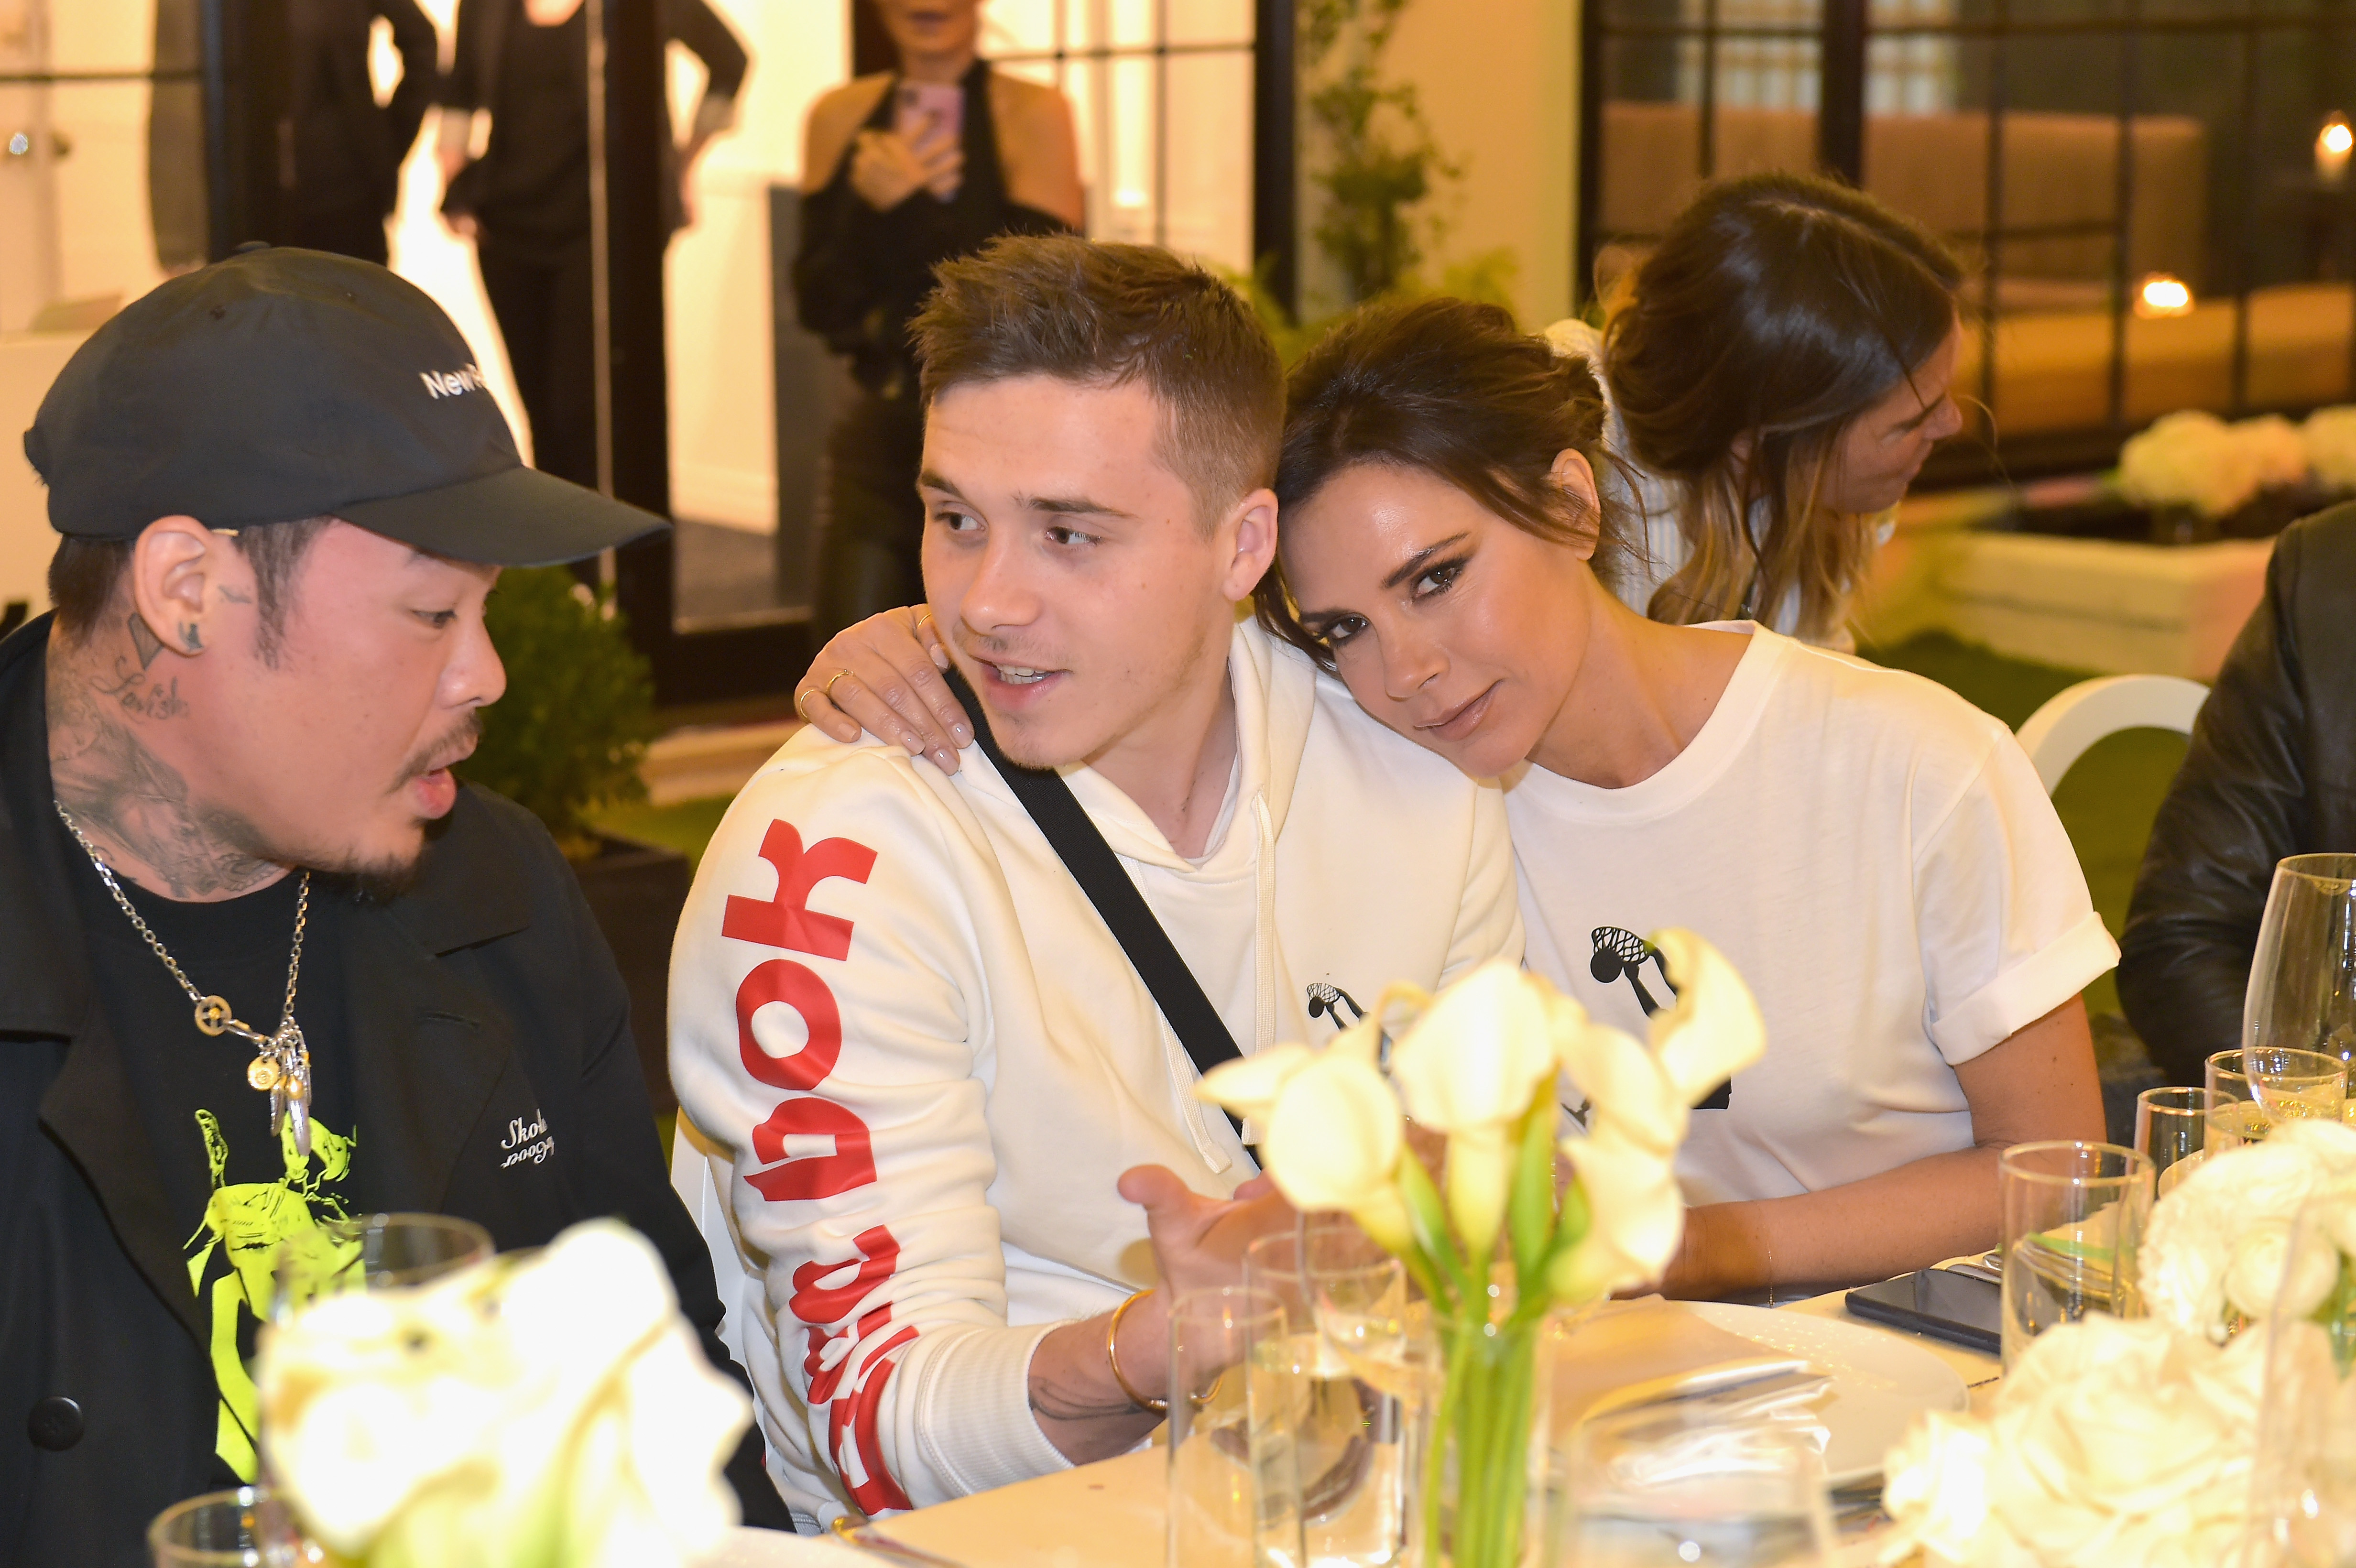 Brooklyn Beckham and Victoria Beckham an event celebrating Reebok and Victoria Beckham celebrate their partnership. Special guest Shaquille O'Neal officially welcomes Victoria to the Reebok Team at The House on Sunset on April 12, 2018 in Beverly Hills, California. (Photo by Donato Sardella/Getty Images for Reebok) *** Local Caption *** Dr. Woo, Brooklyn Beckham;Victoria Beckham